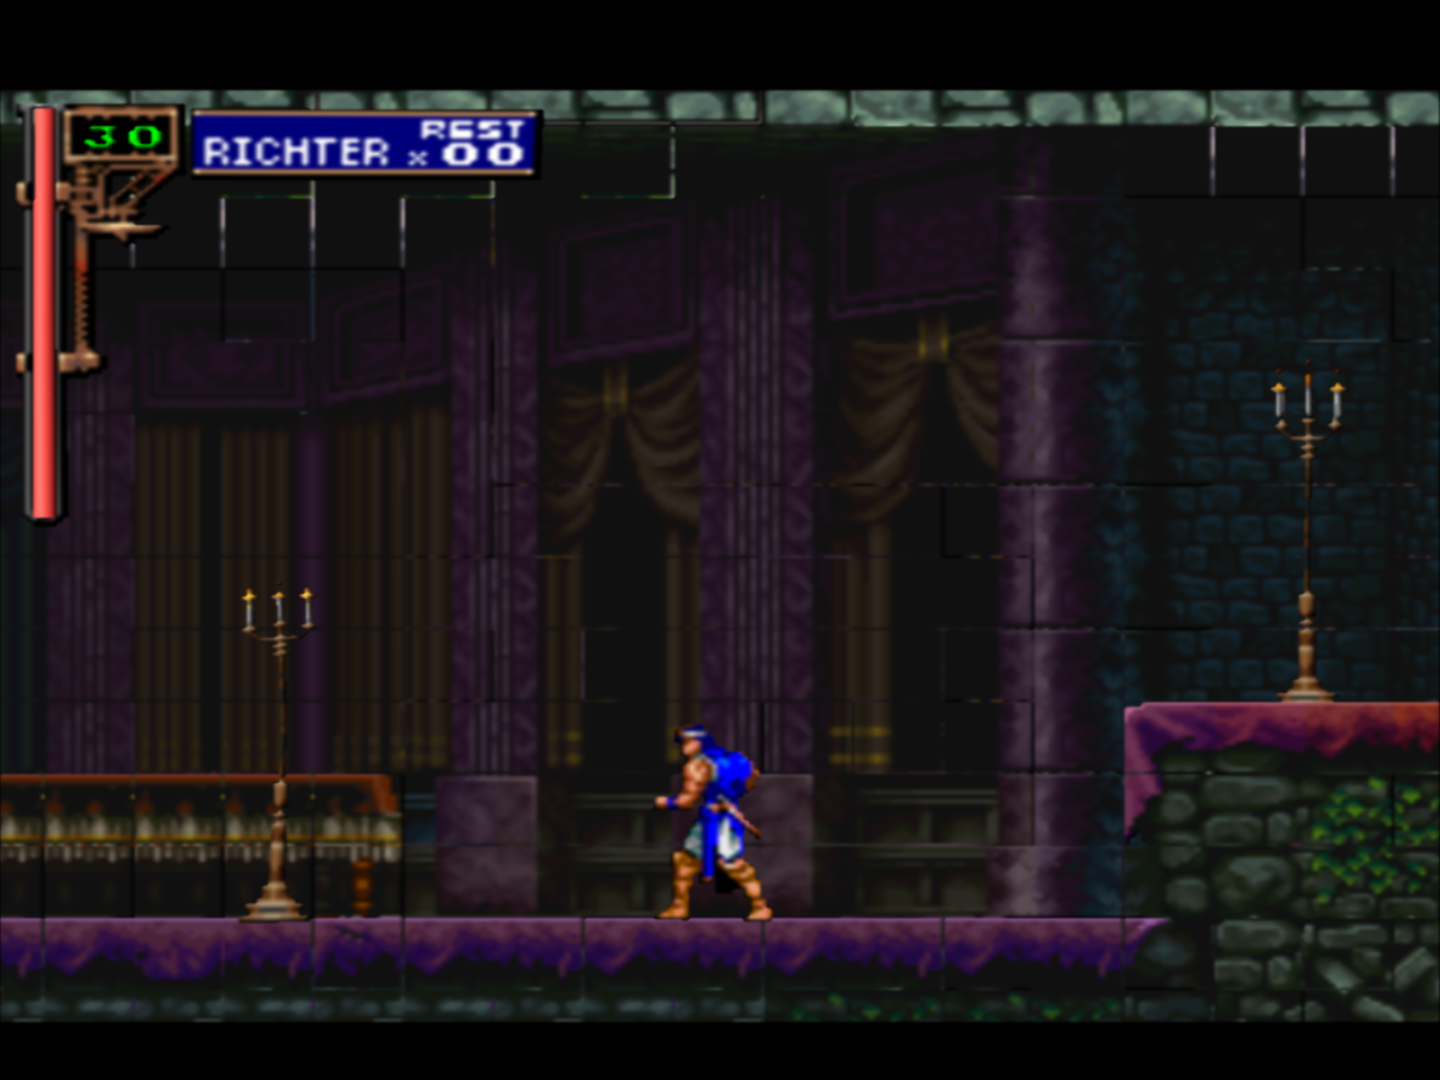 OpenGL] Castlevania Symphonia of the Night - Sprite Tiles and